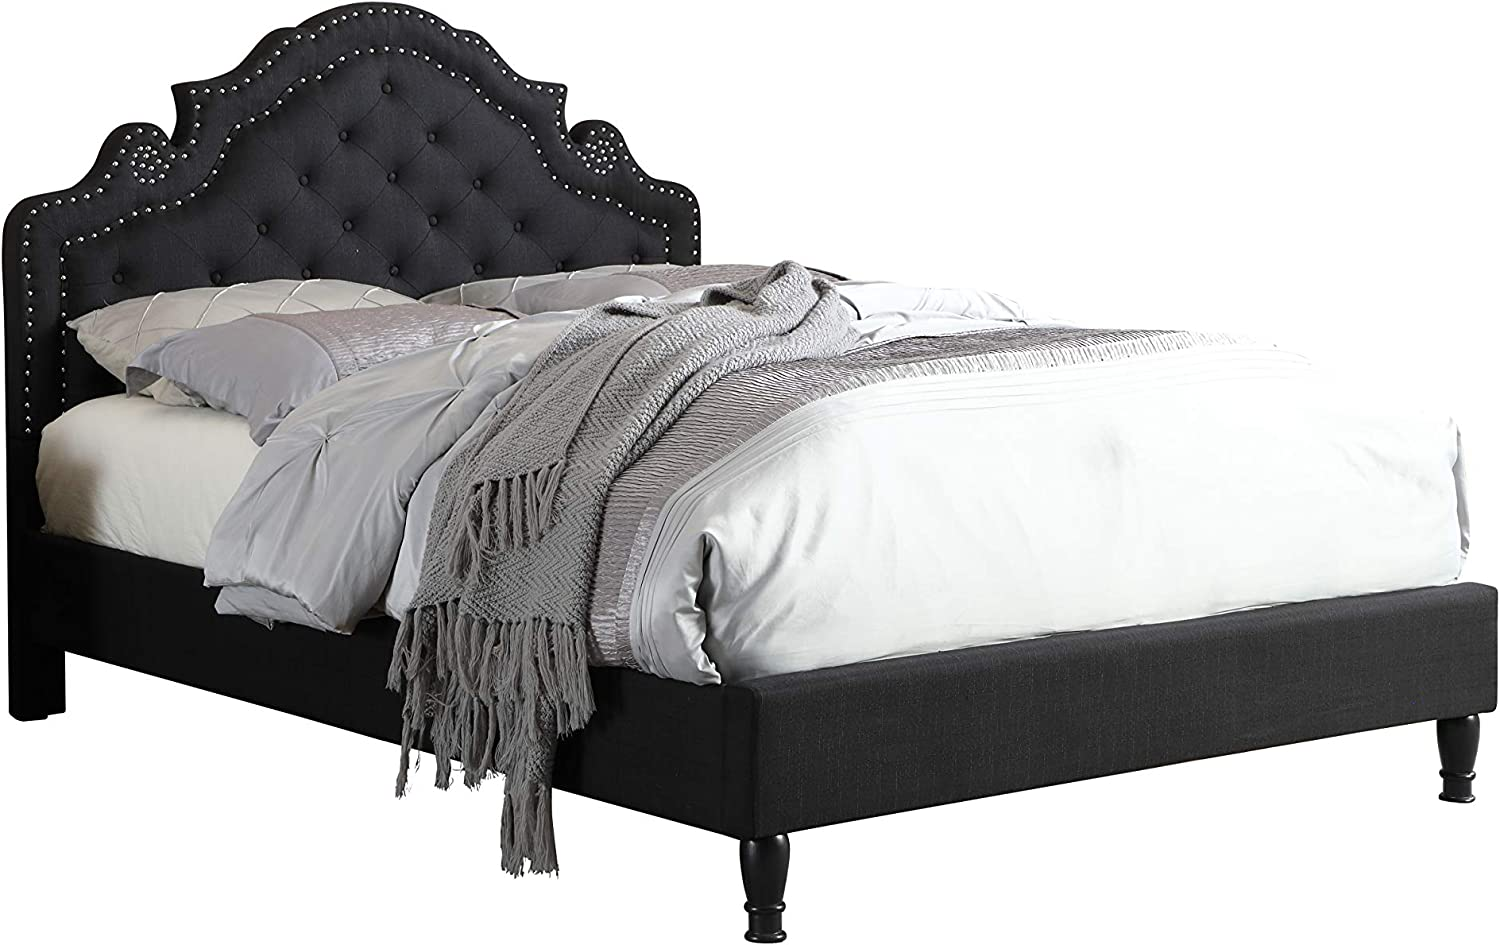 LIFE Home Bed 0023, Full, Black